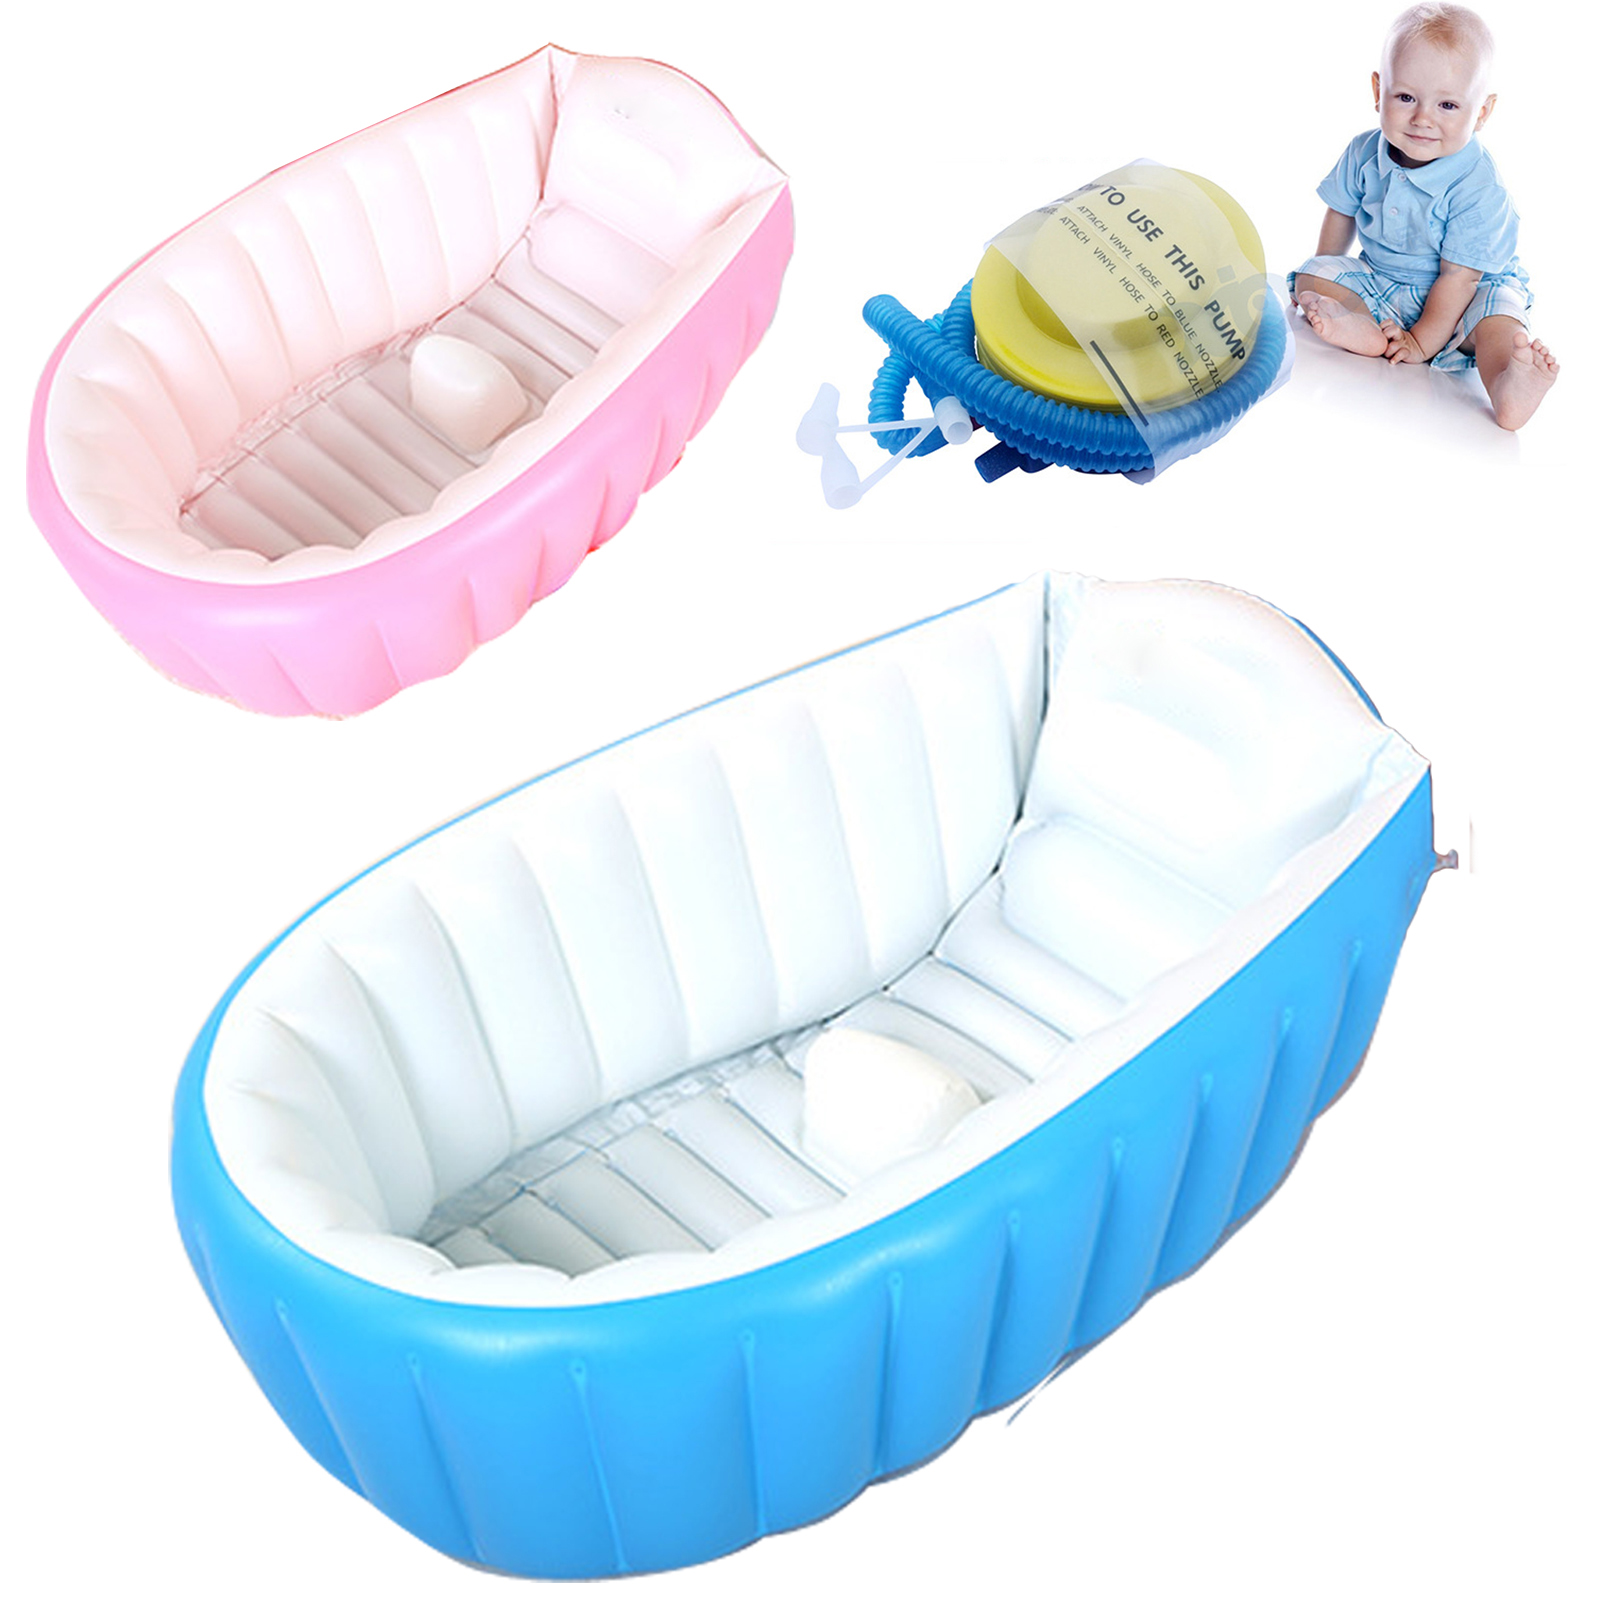 2017 real top fashion baby ring inflatable tubs infant for Best rated inflatable swimming pool